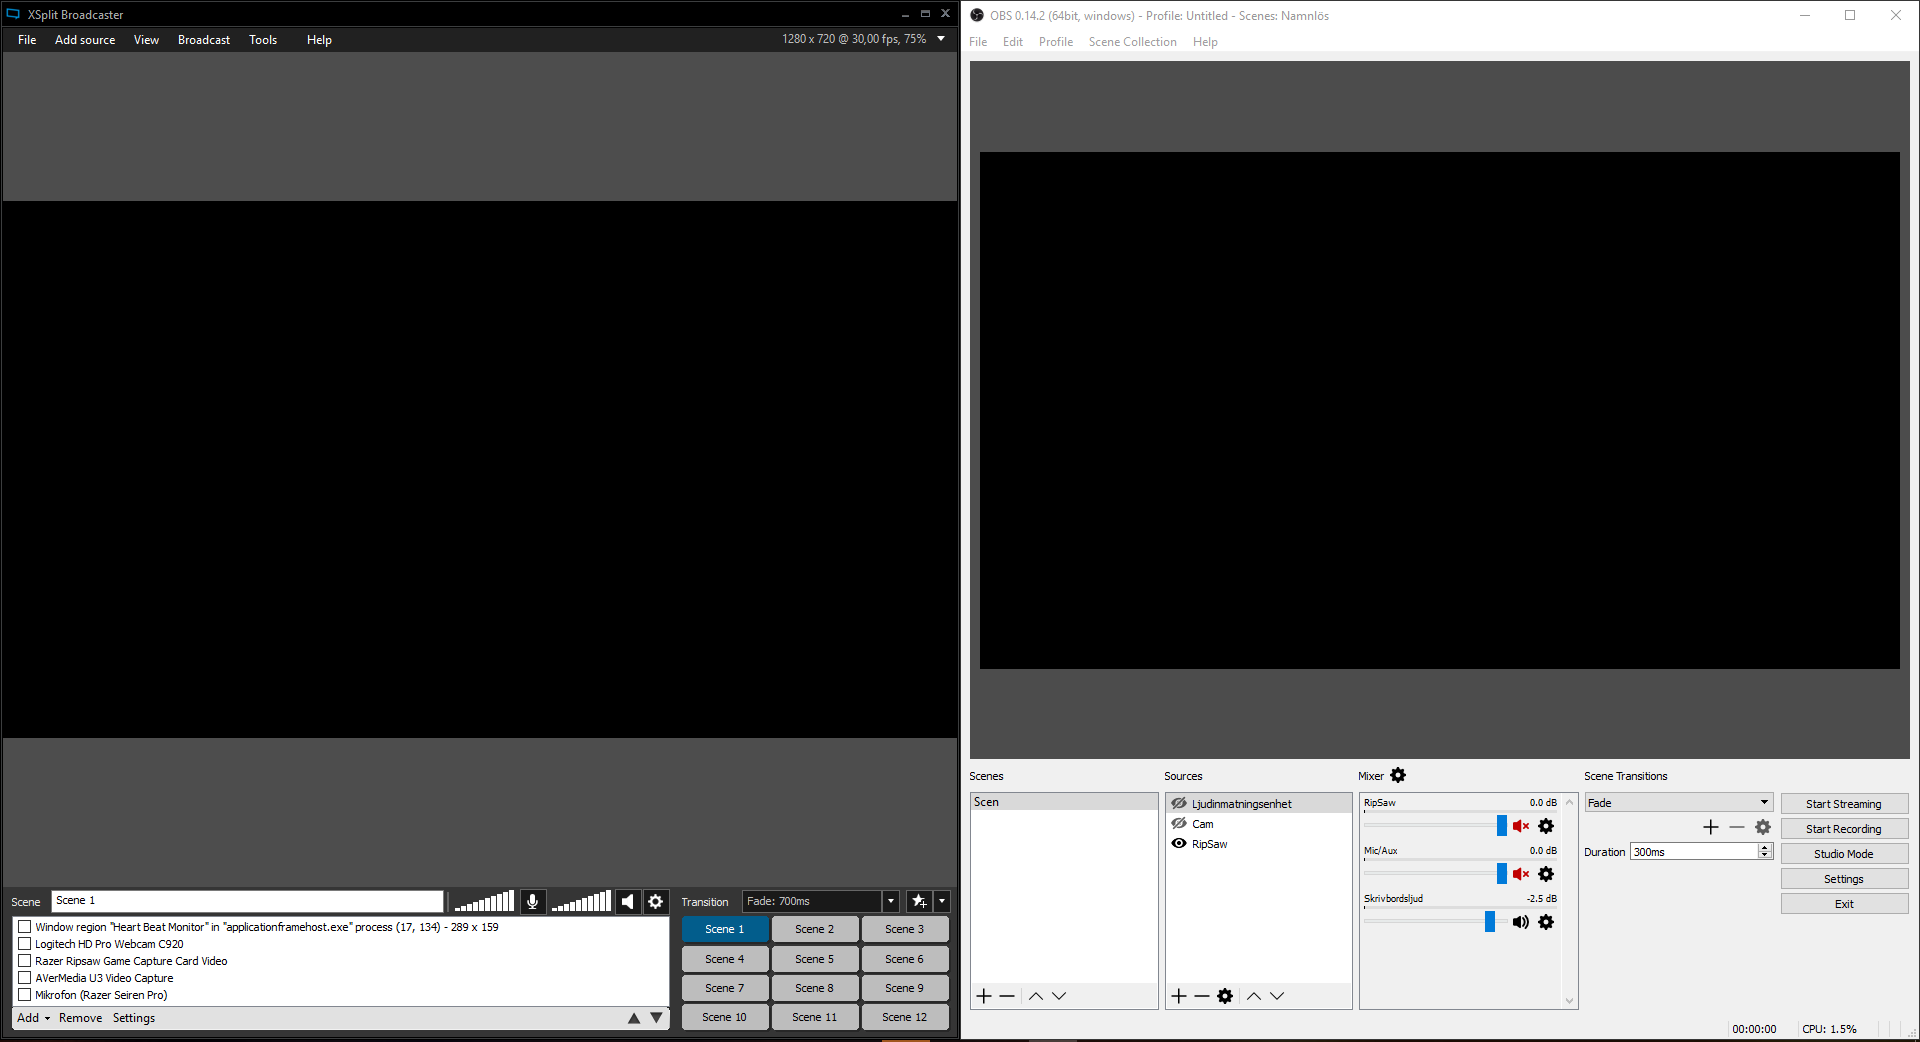 Here you can see OBS and XSplit side by side